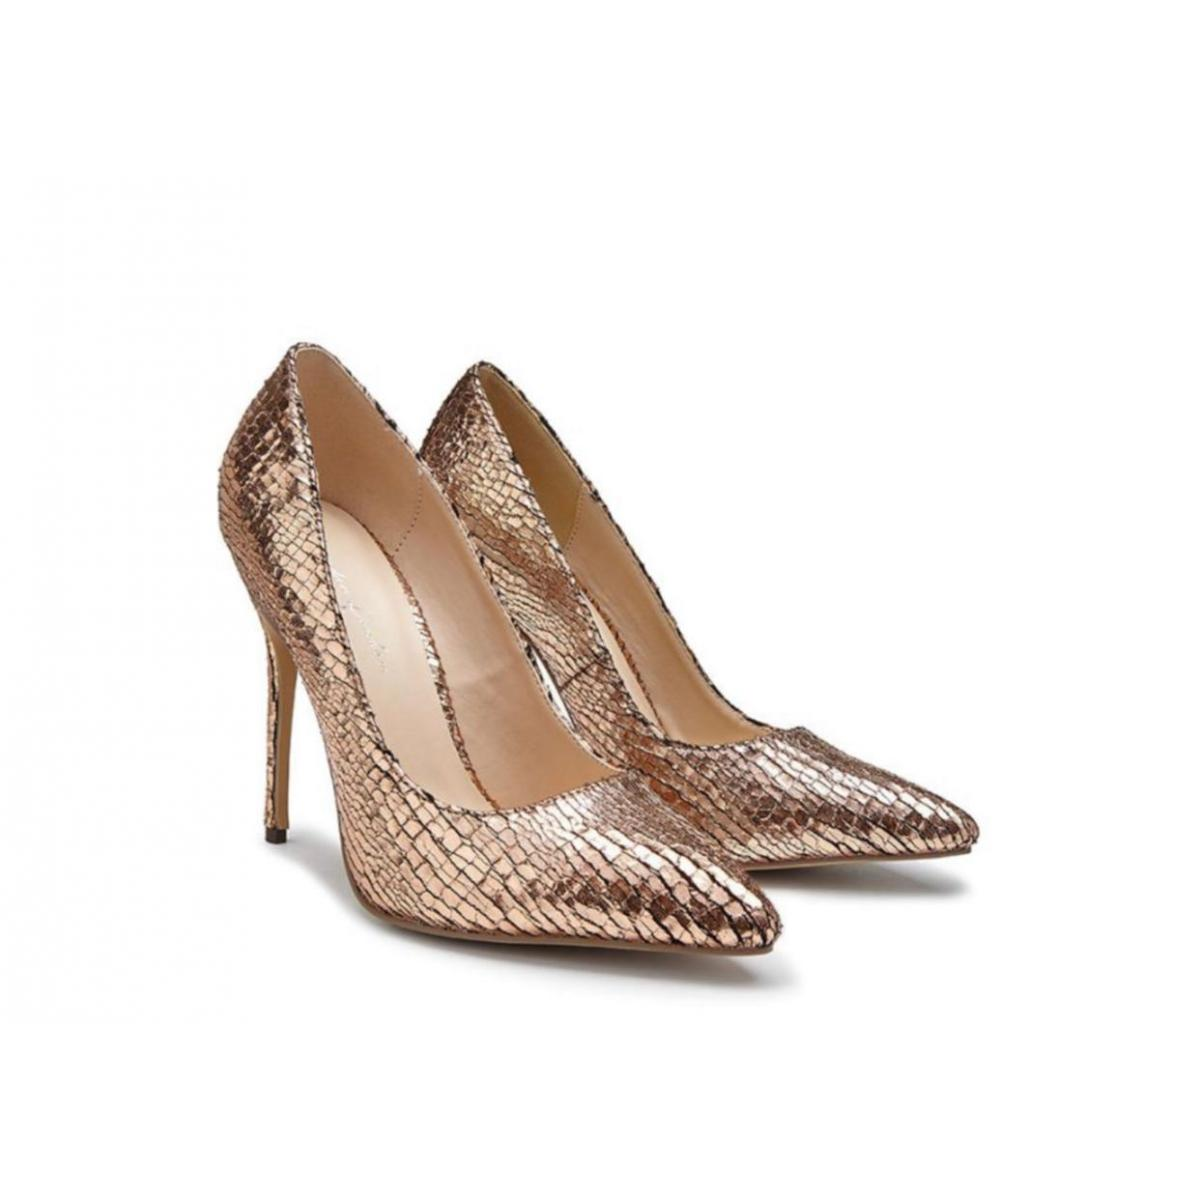 Pink Paradox Cairo - Rose Gold Metallic Python Print Court Shoe 3